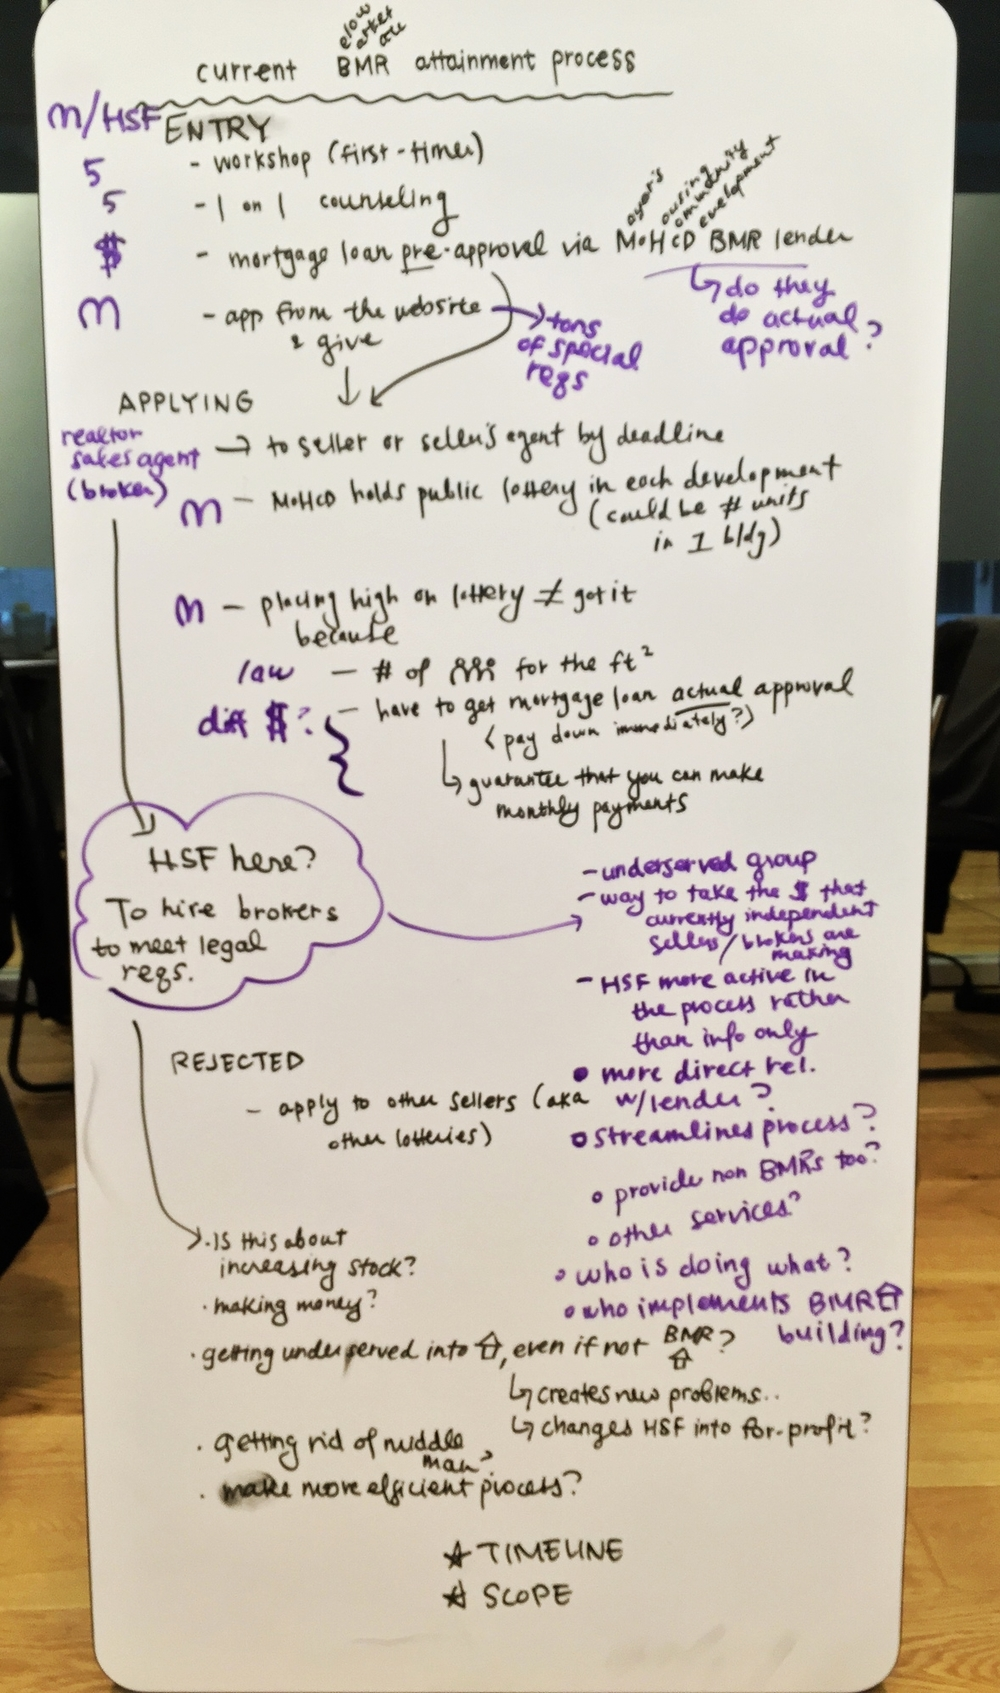 Notes from our first interview with Carlos, our client.